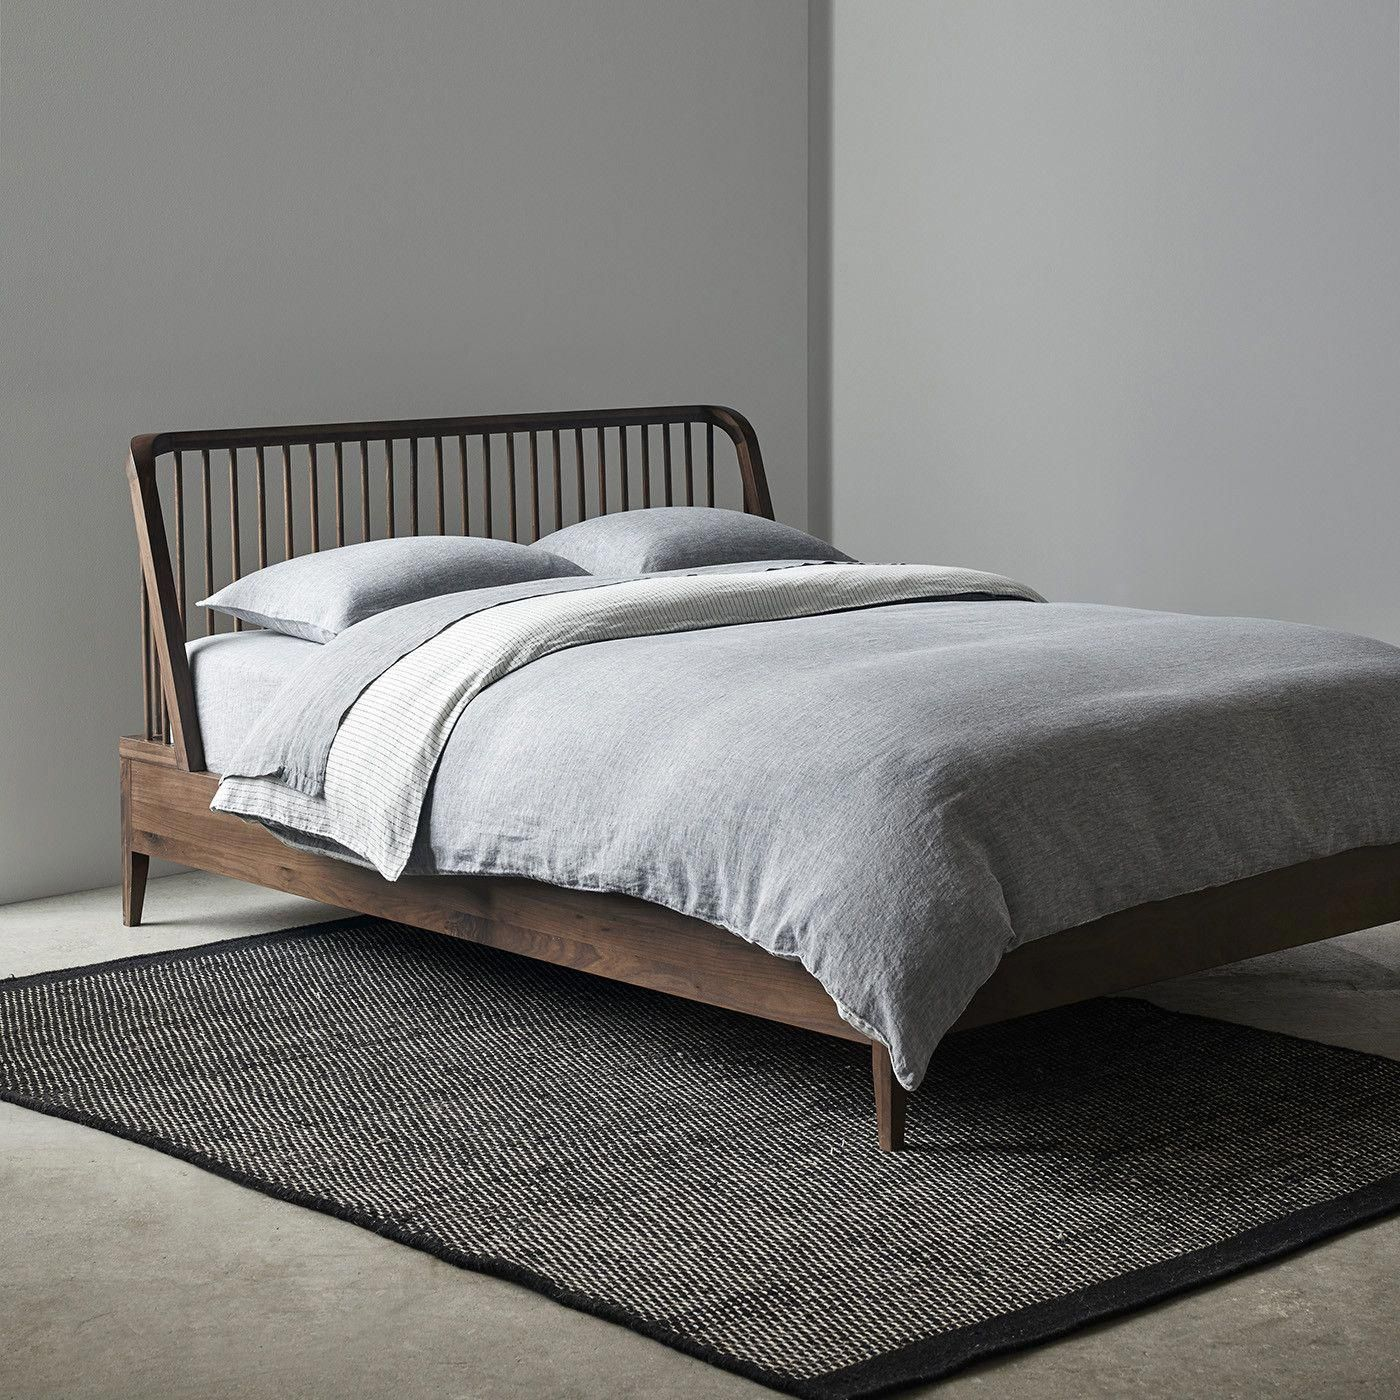 Spindle Walnut Bed Queen Unison beds Walnut bed